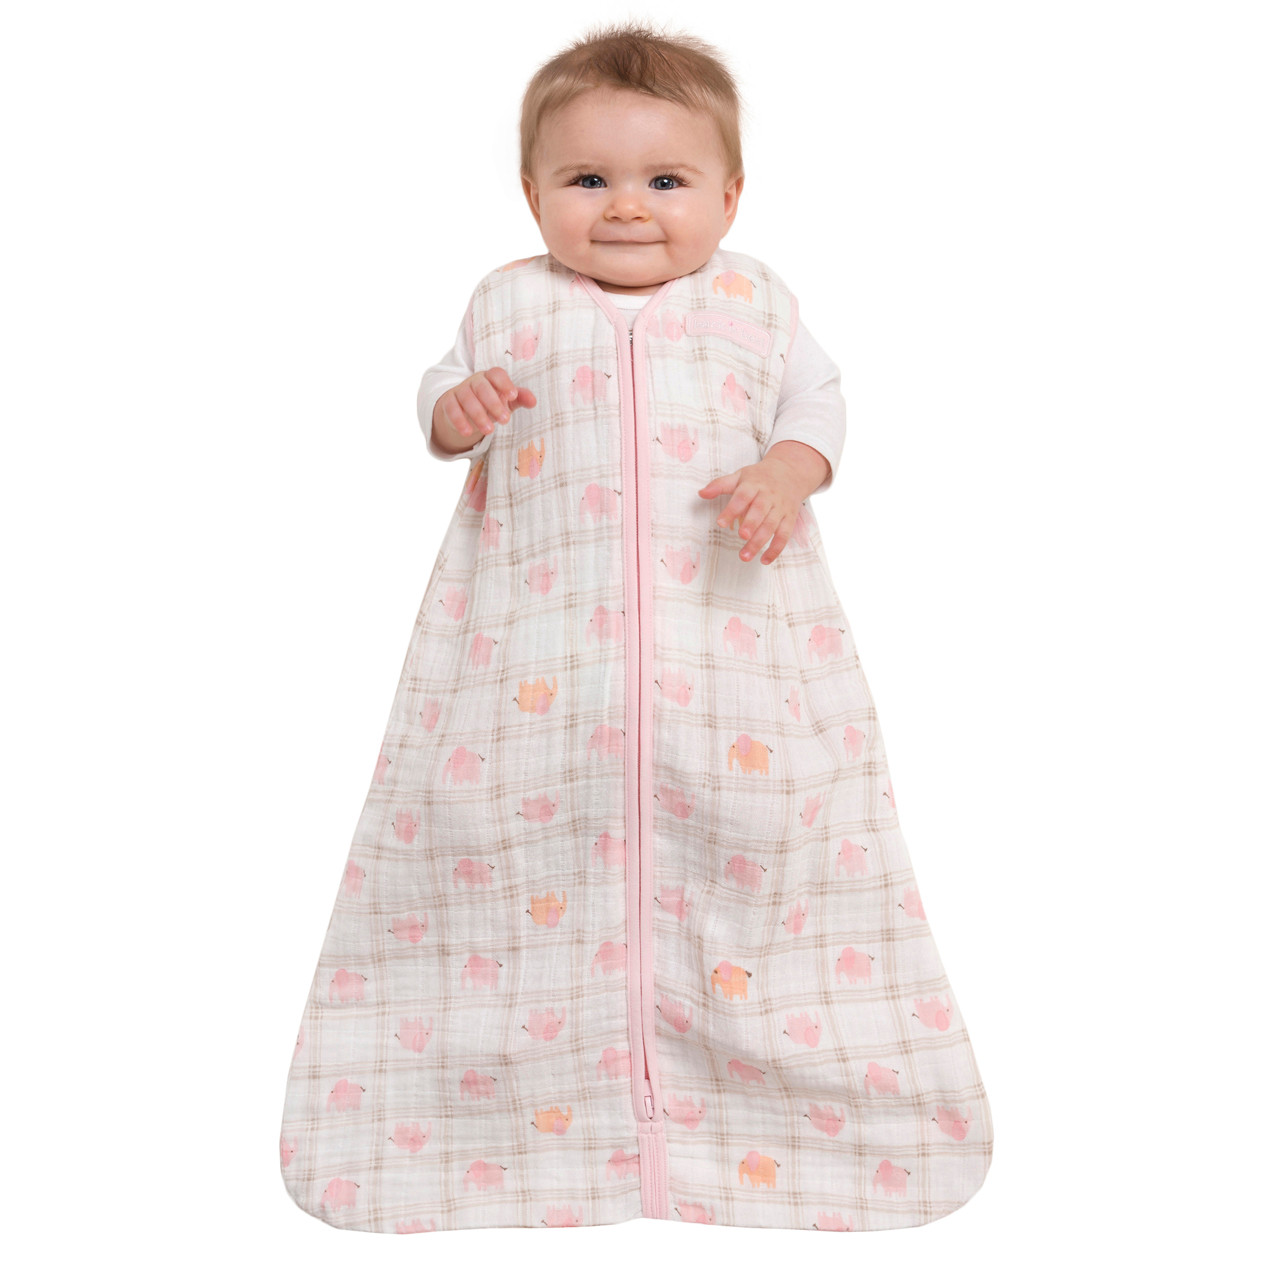 Halo Sleepsack Wearable Blanket 100 Cotton Muslin Elephant Pink